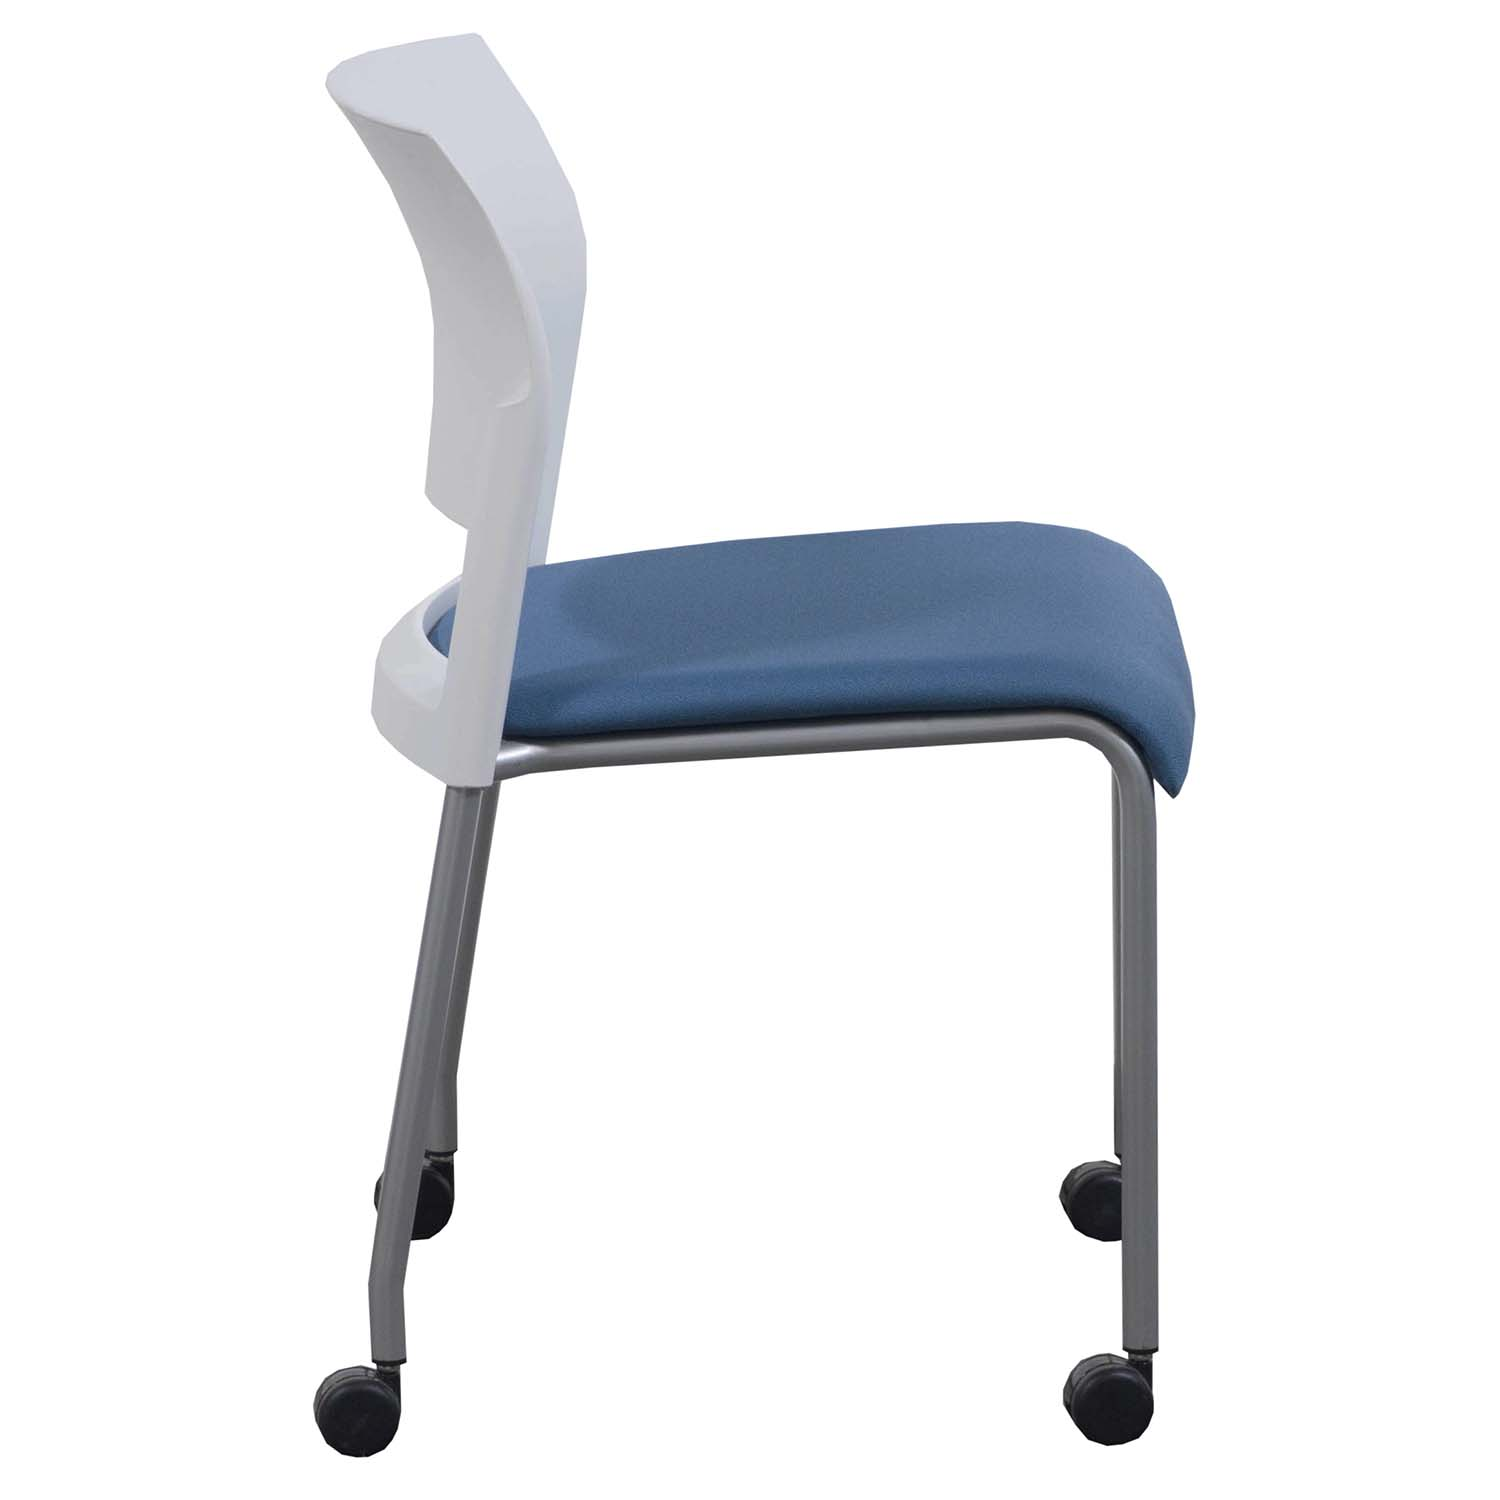 Moving Chair Steelcase Move Used Mobile Stack Chair White And Blue